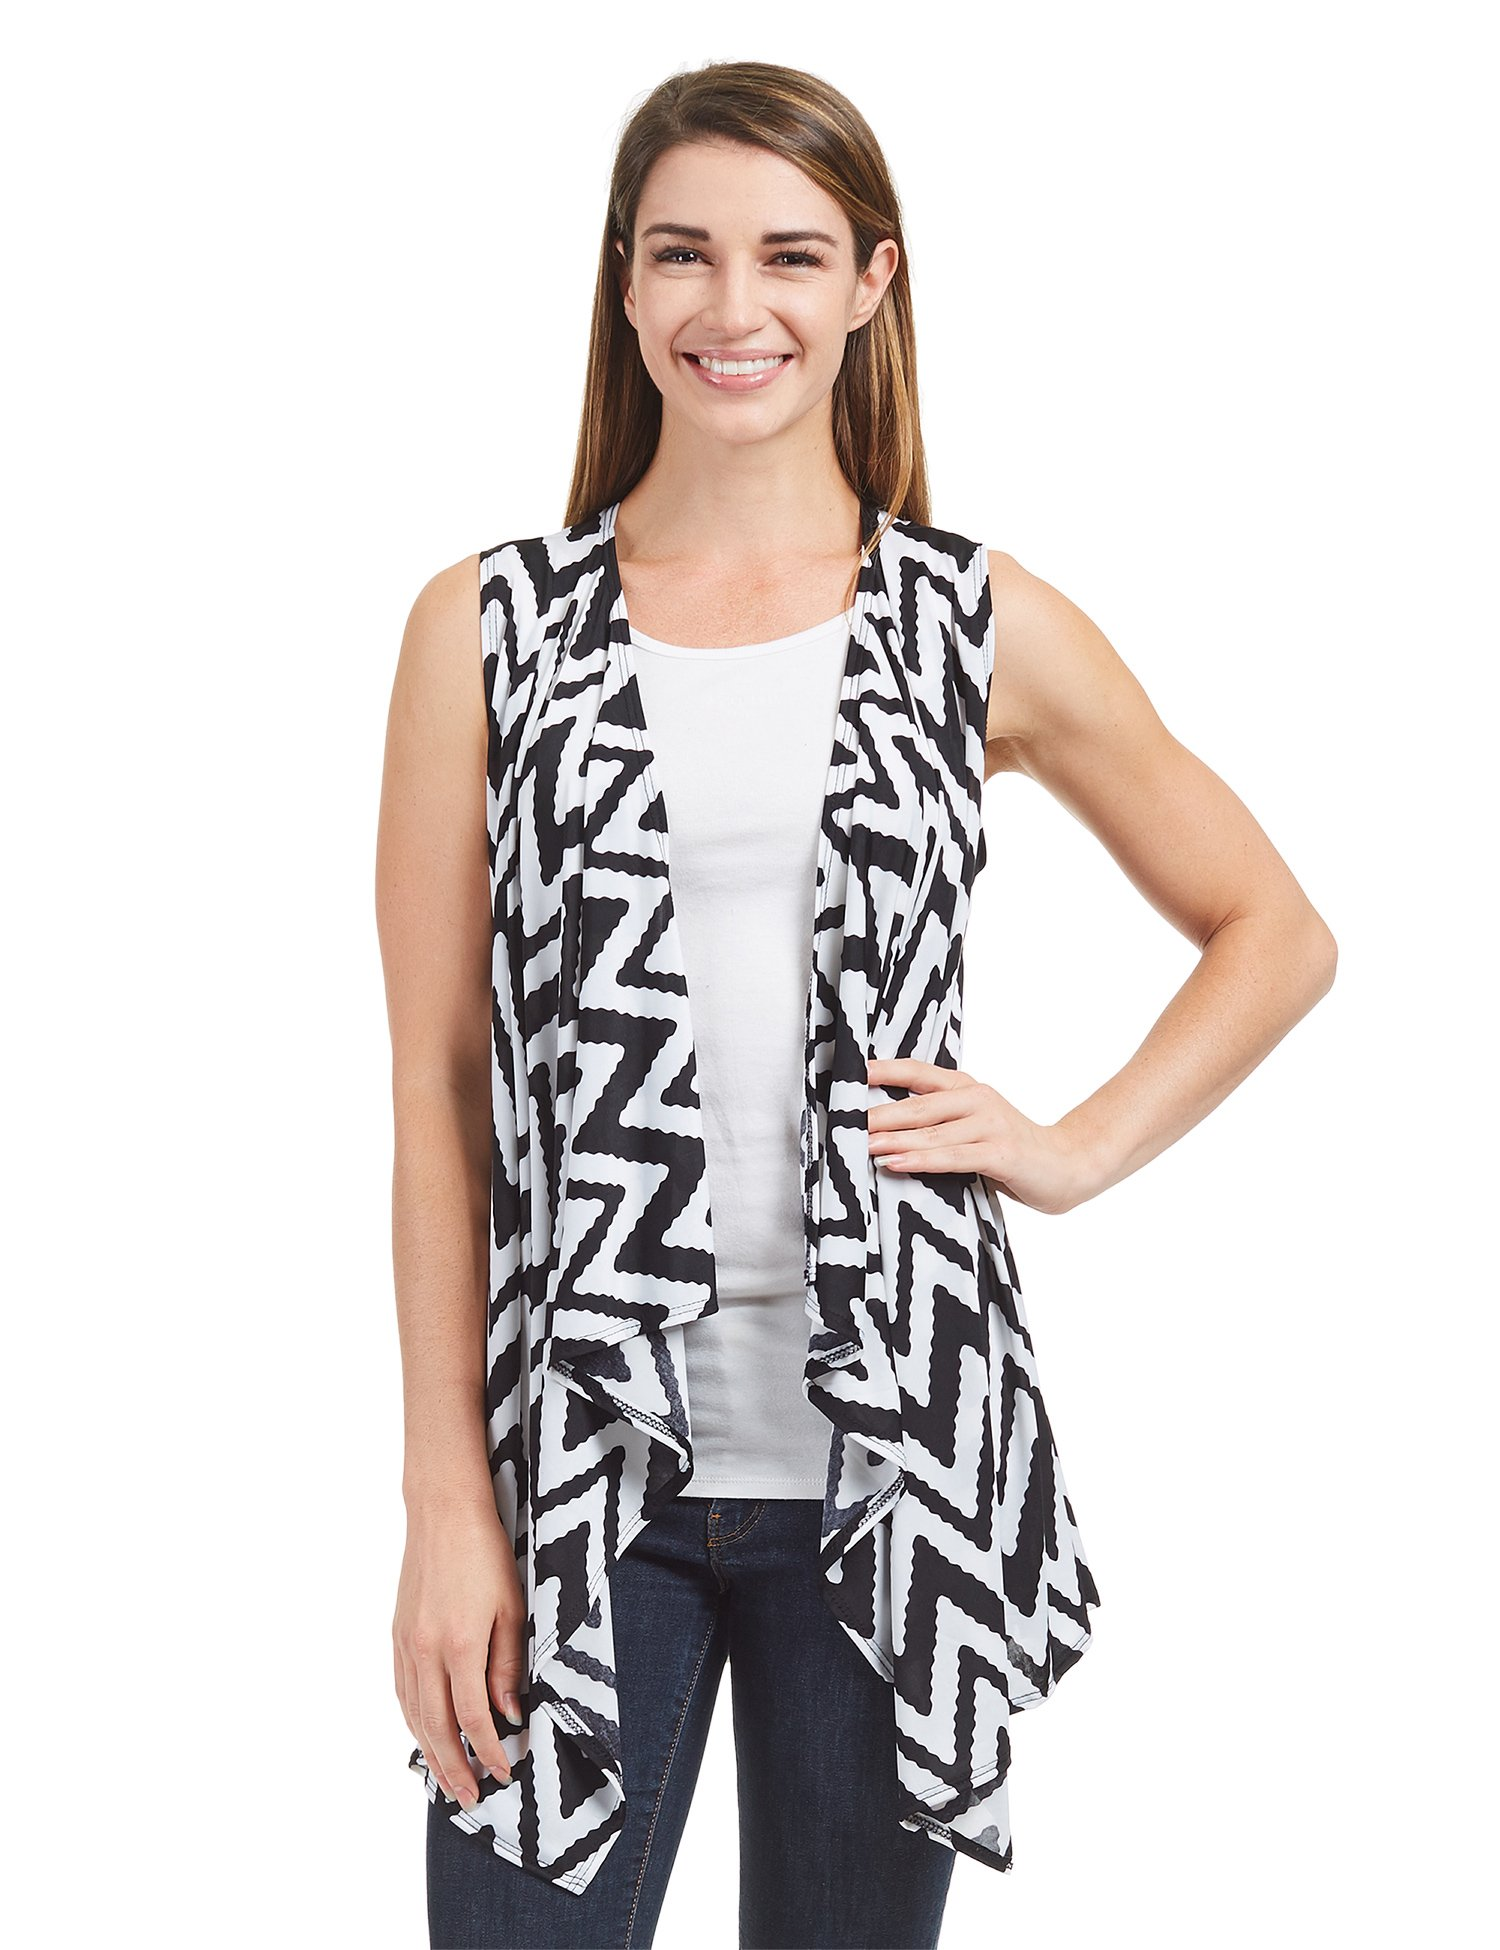 Lock and Love WSK1350 Womens Lightweight Print Draped Sleeveless Cardigan XXXL CHEV_Black by Lock and Love (Image #2)